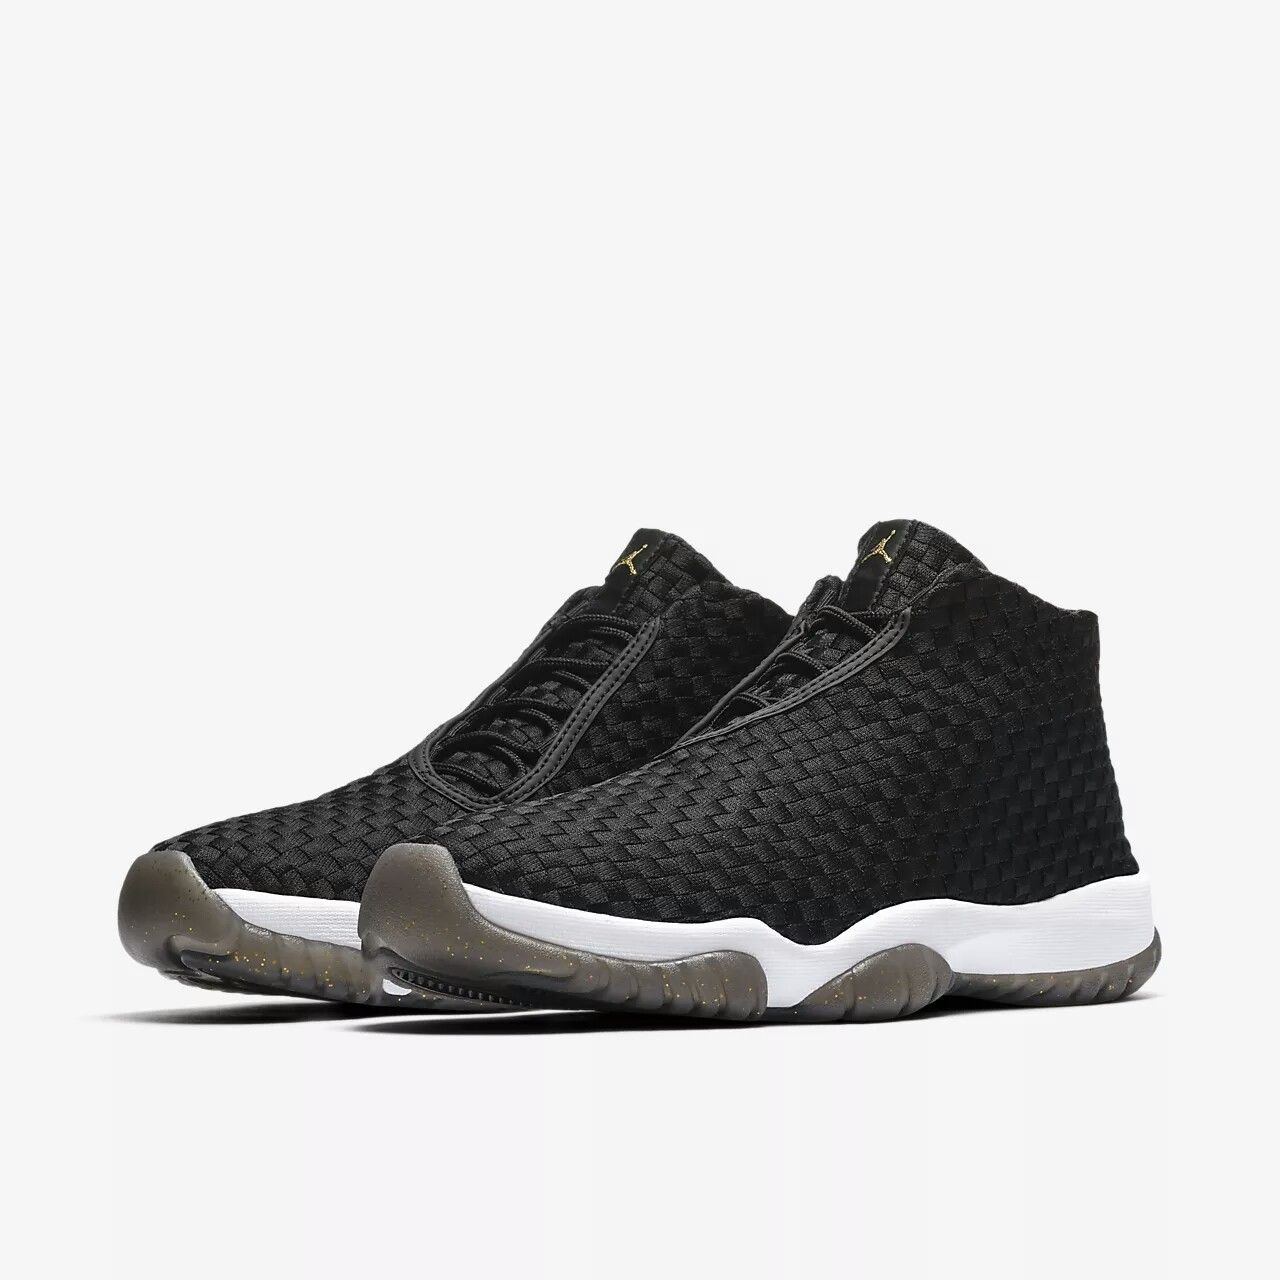 big sale 8a77f ab6a1 ... skor sverige xnx103918 2c391 7c525  shop michael jordan jordan future  air jordan xi sneaker magazine january 2018 6d161 ac8f8